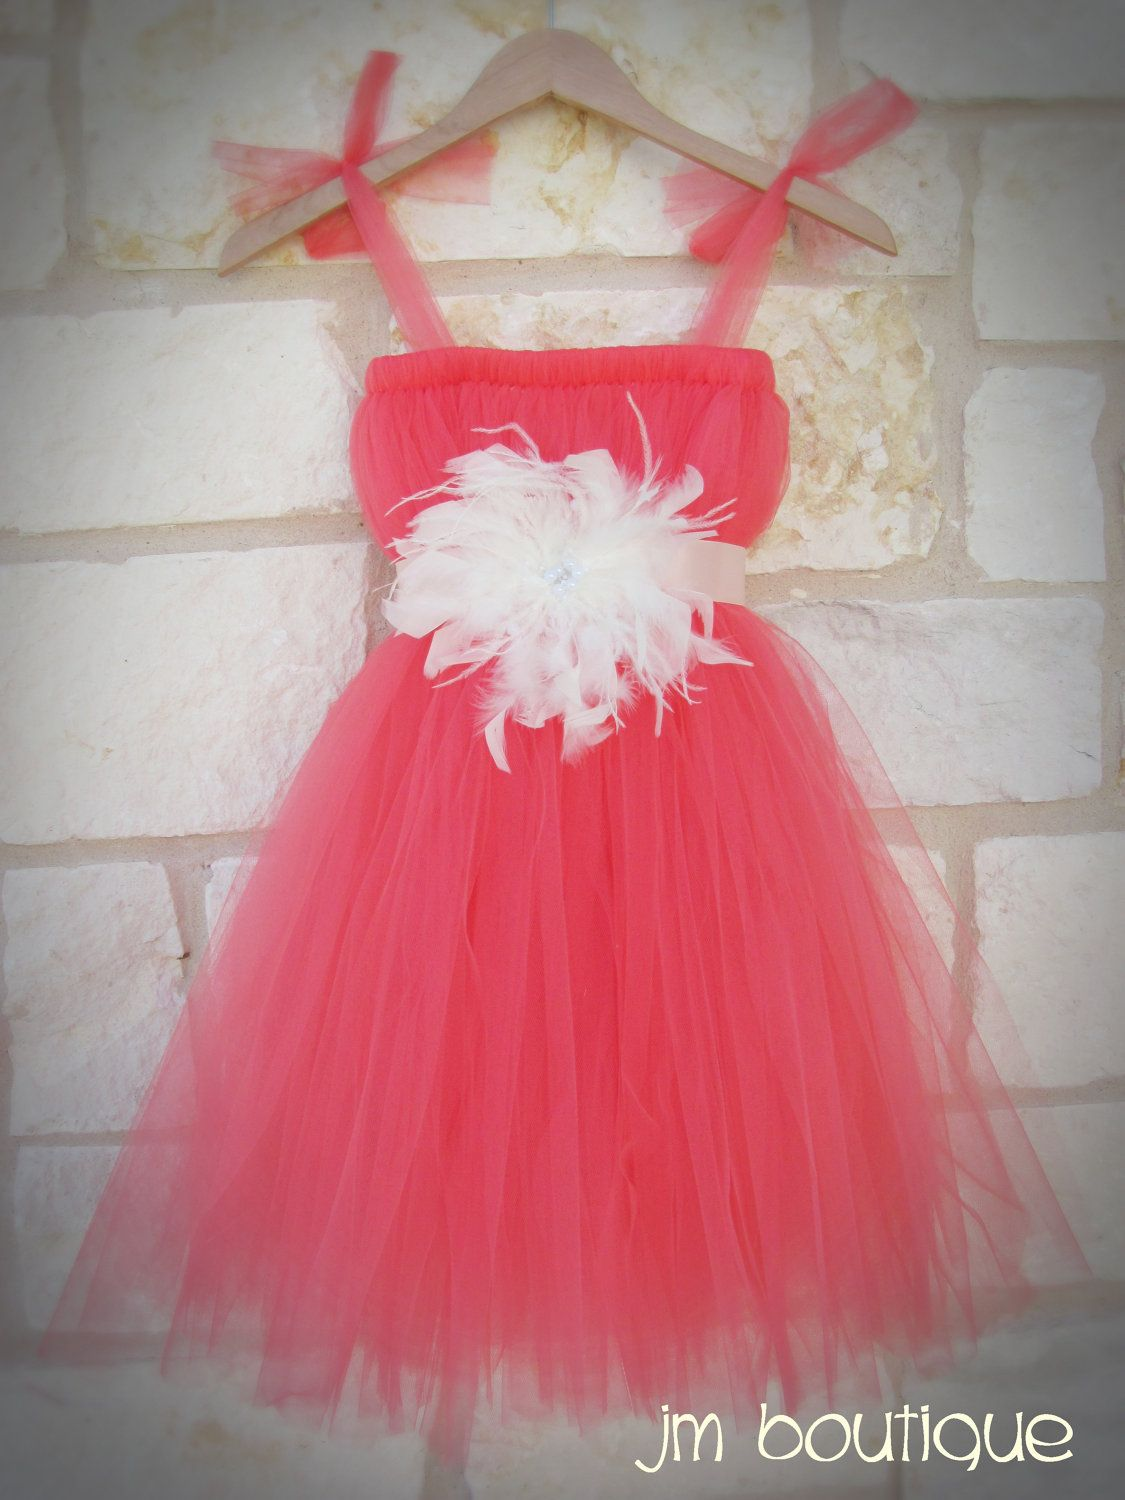 Beach wedding flower girl dresses  Coral Tutu Dress for Wedding Flower Girl Pageant  Mike and Blair